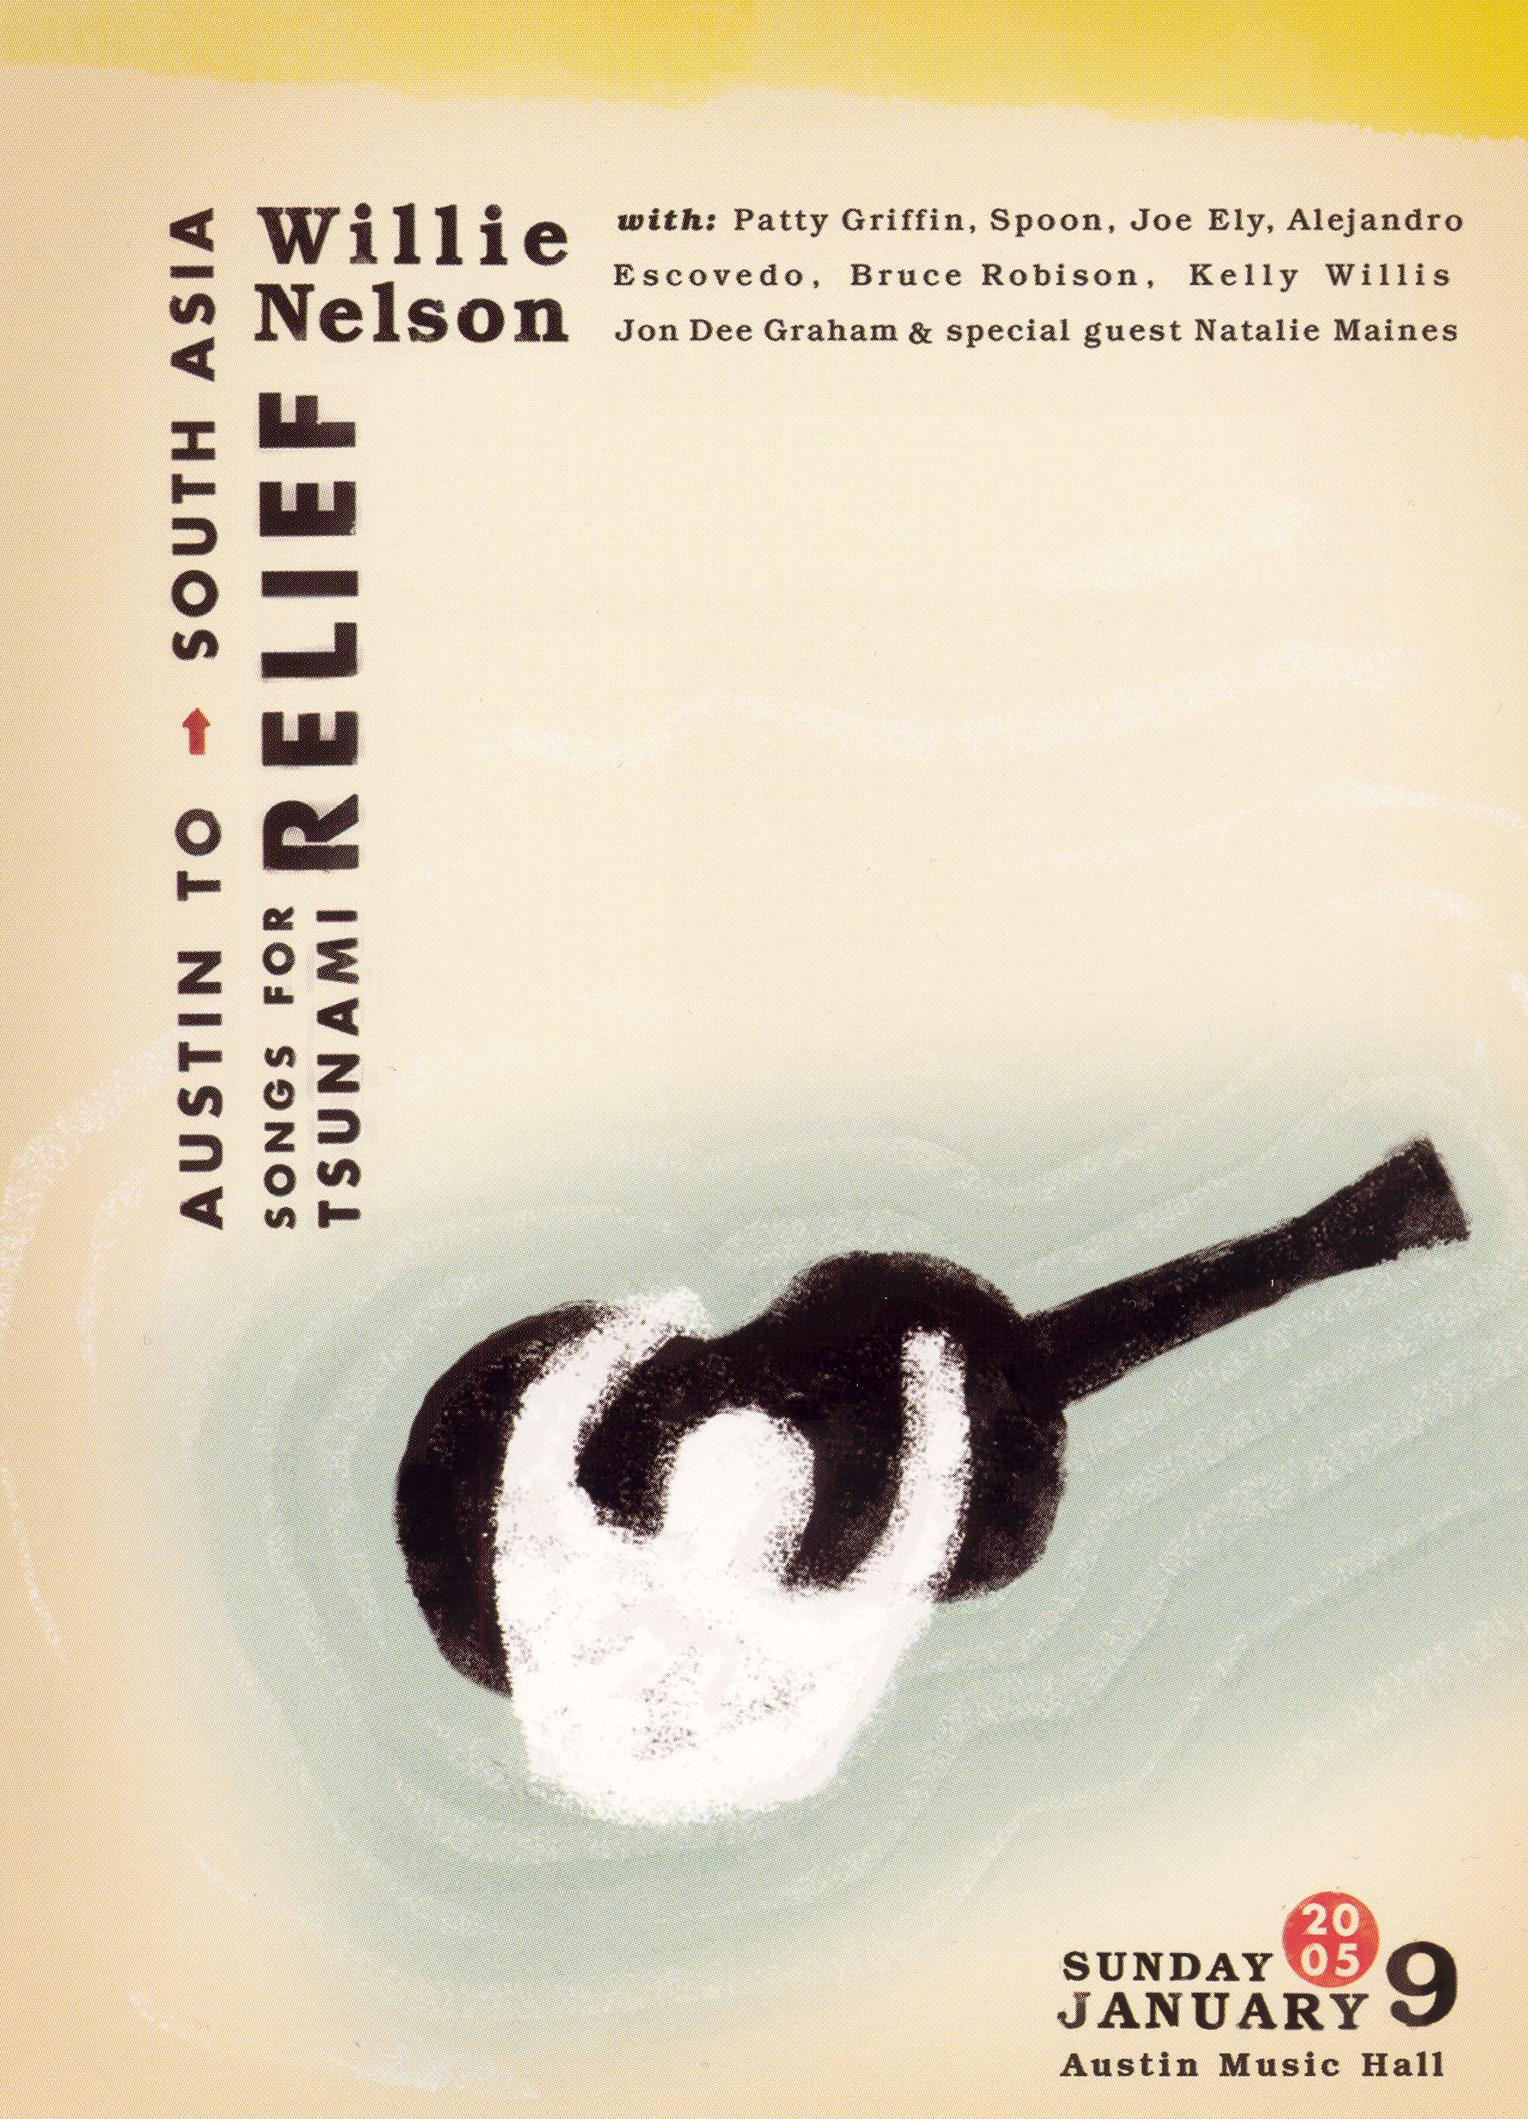 Willie Nelson: Songs for Tsunami Relief - Austin to South Asia